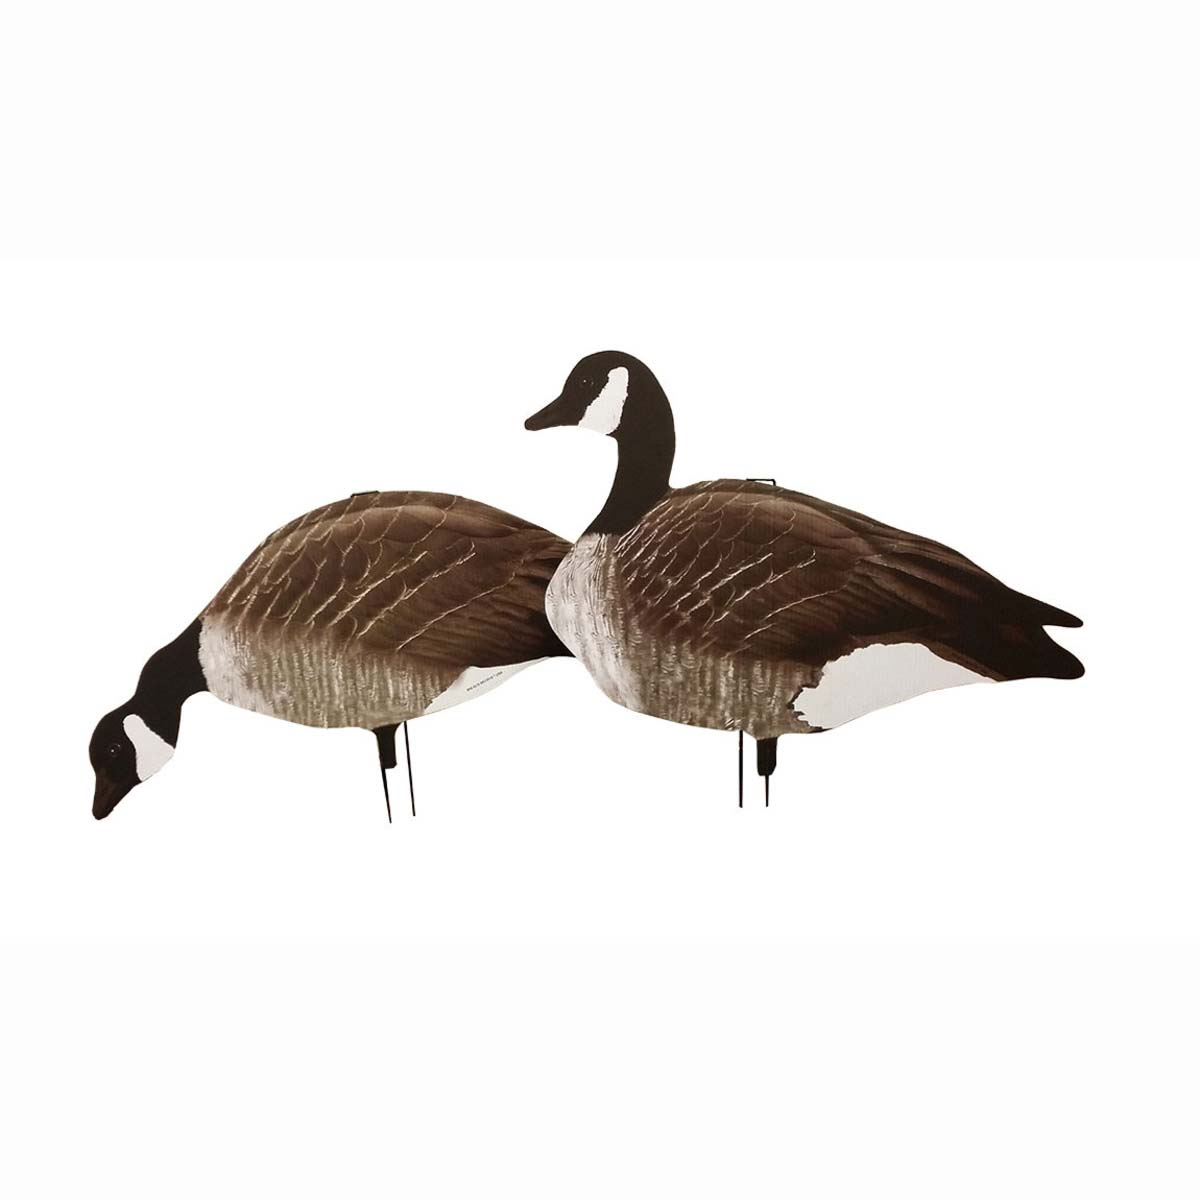 Big Als Decoy X14 Greater Canada Goose Silhouettes, Pack of 14_1.jpg